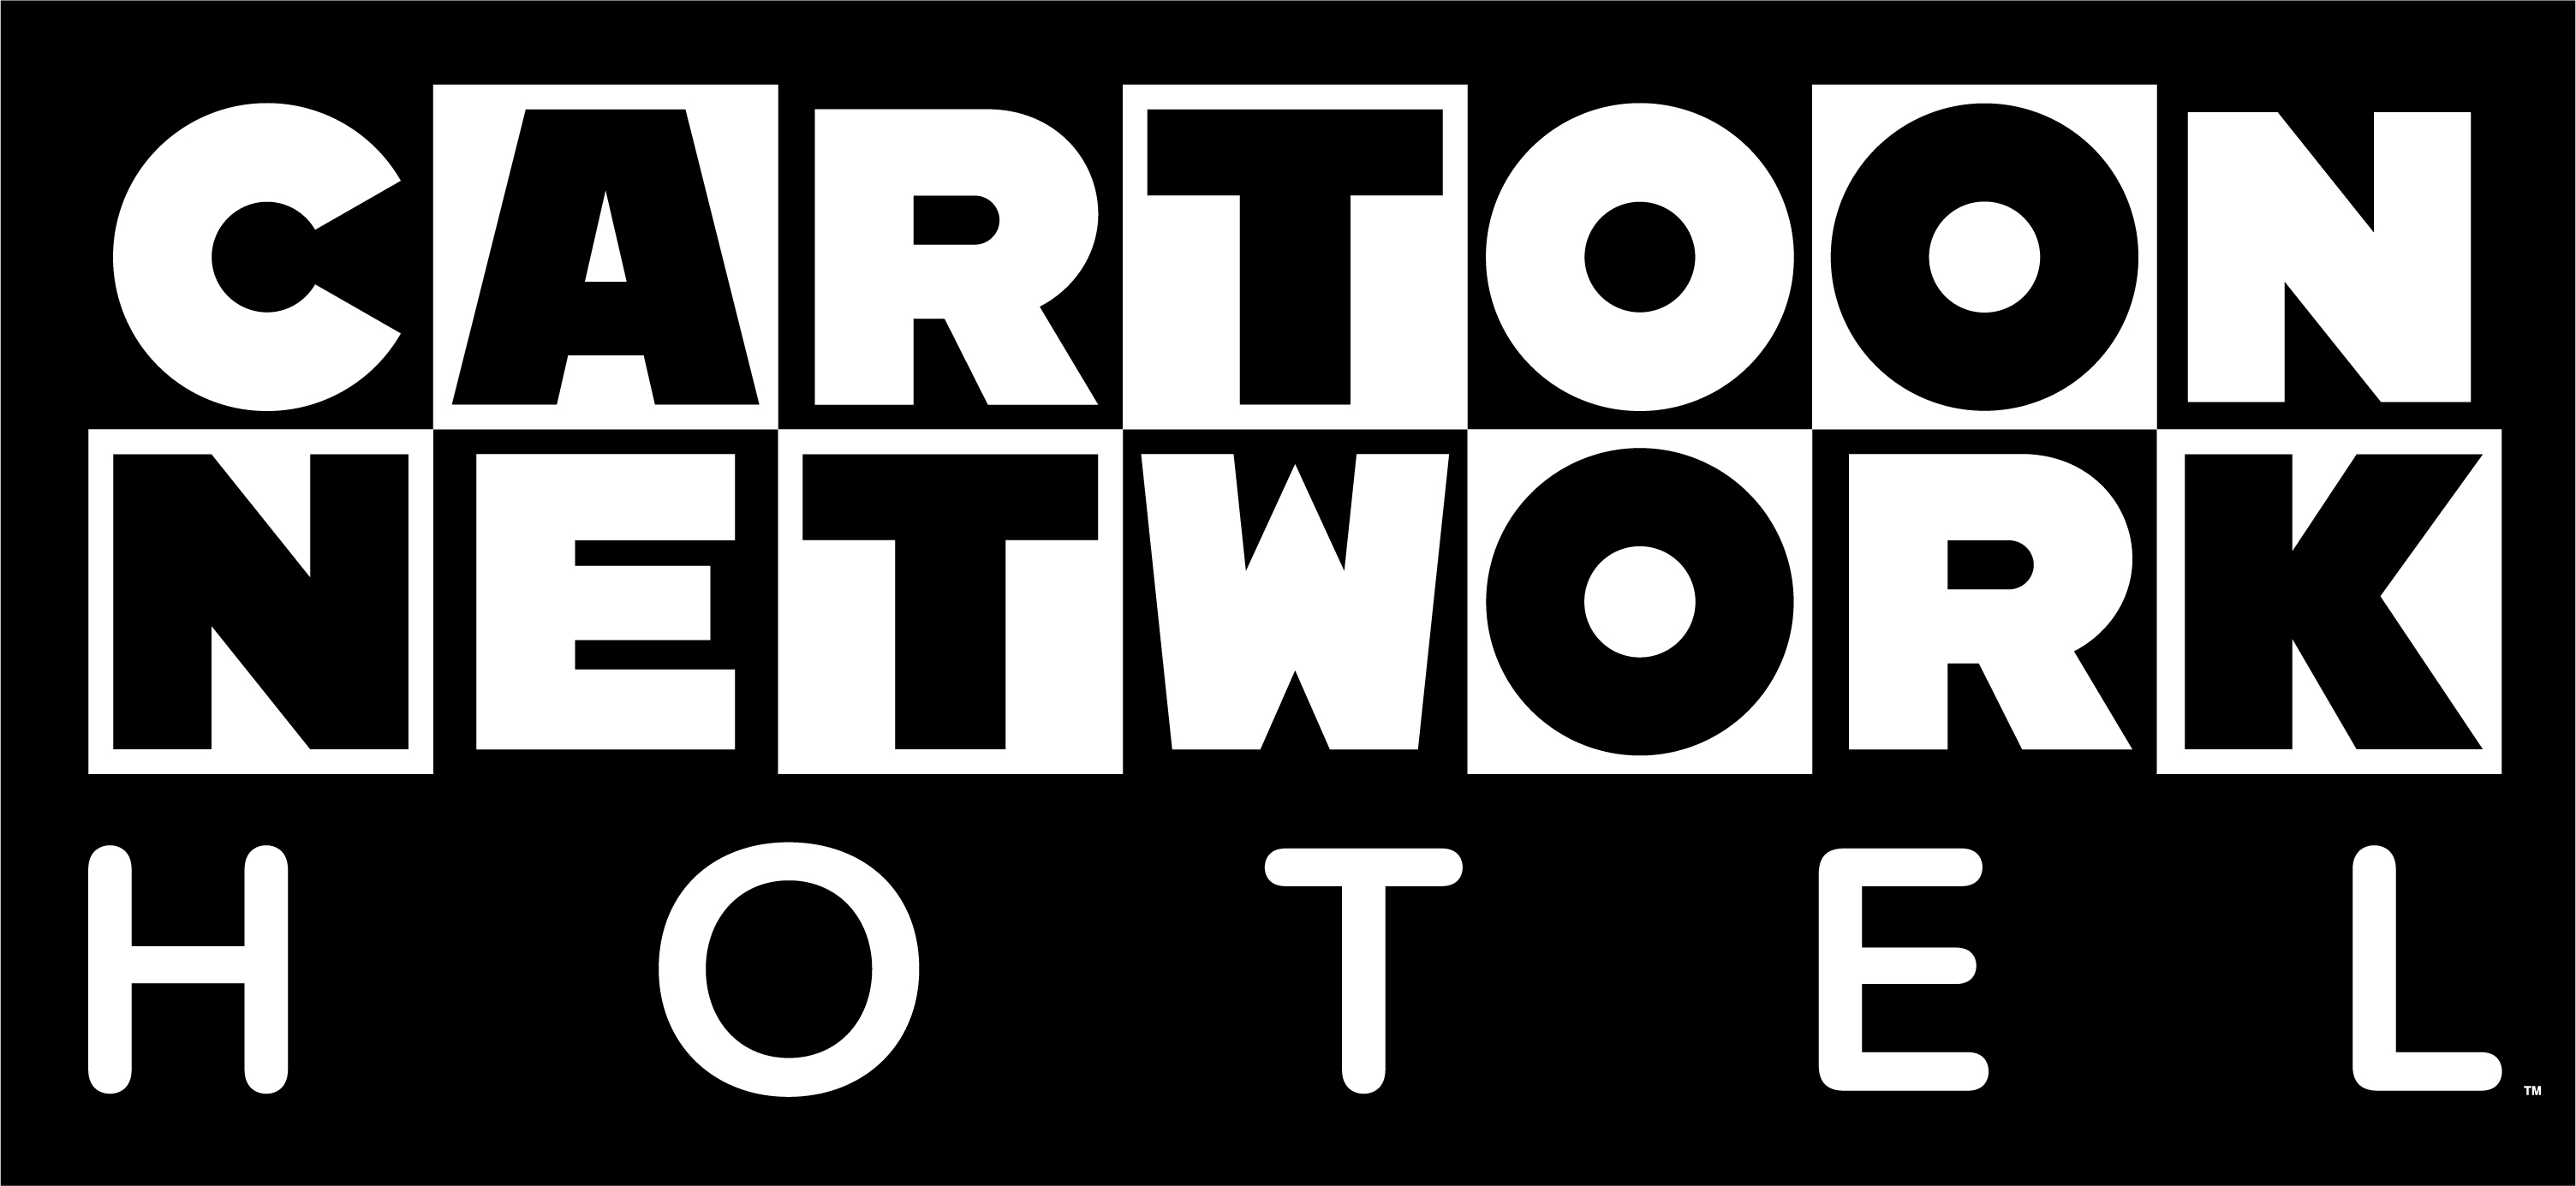 Cartoon Network Hotel logo with black background